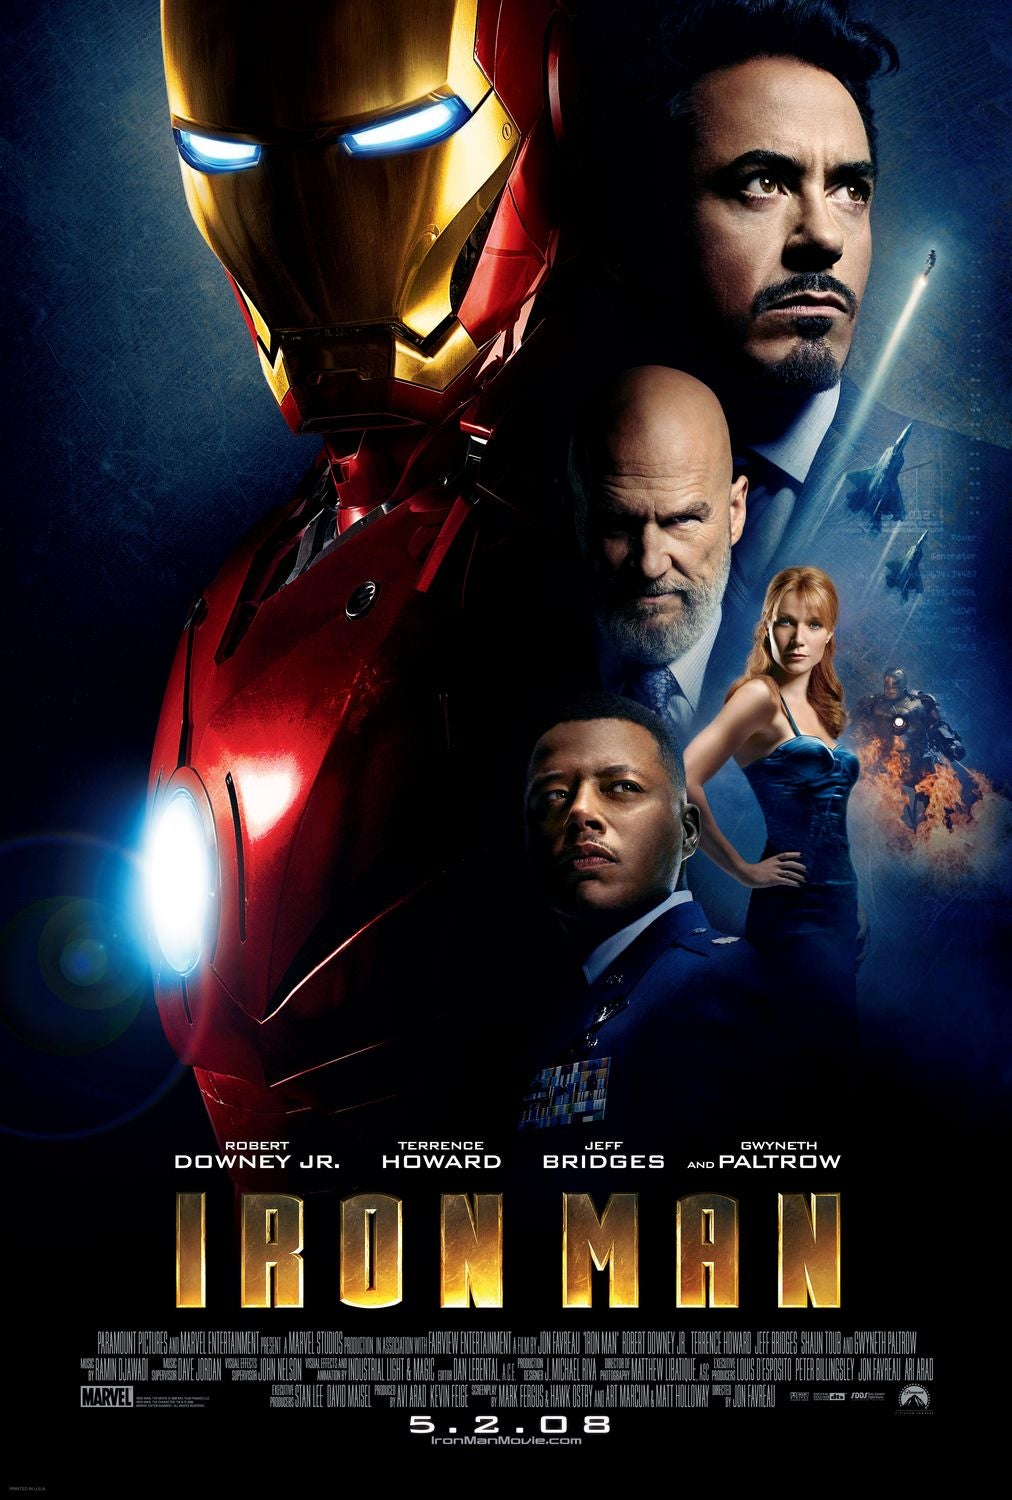 Iron Man Movie Poster - Marvel Cinematic Universe